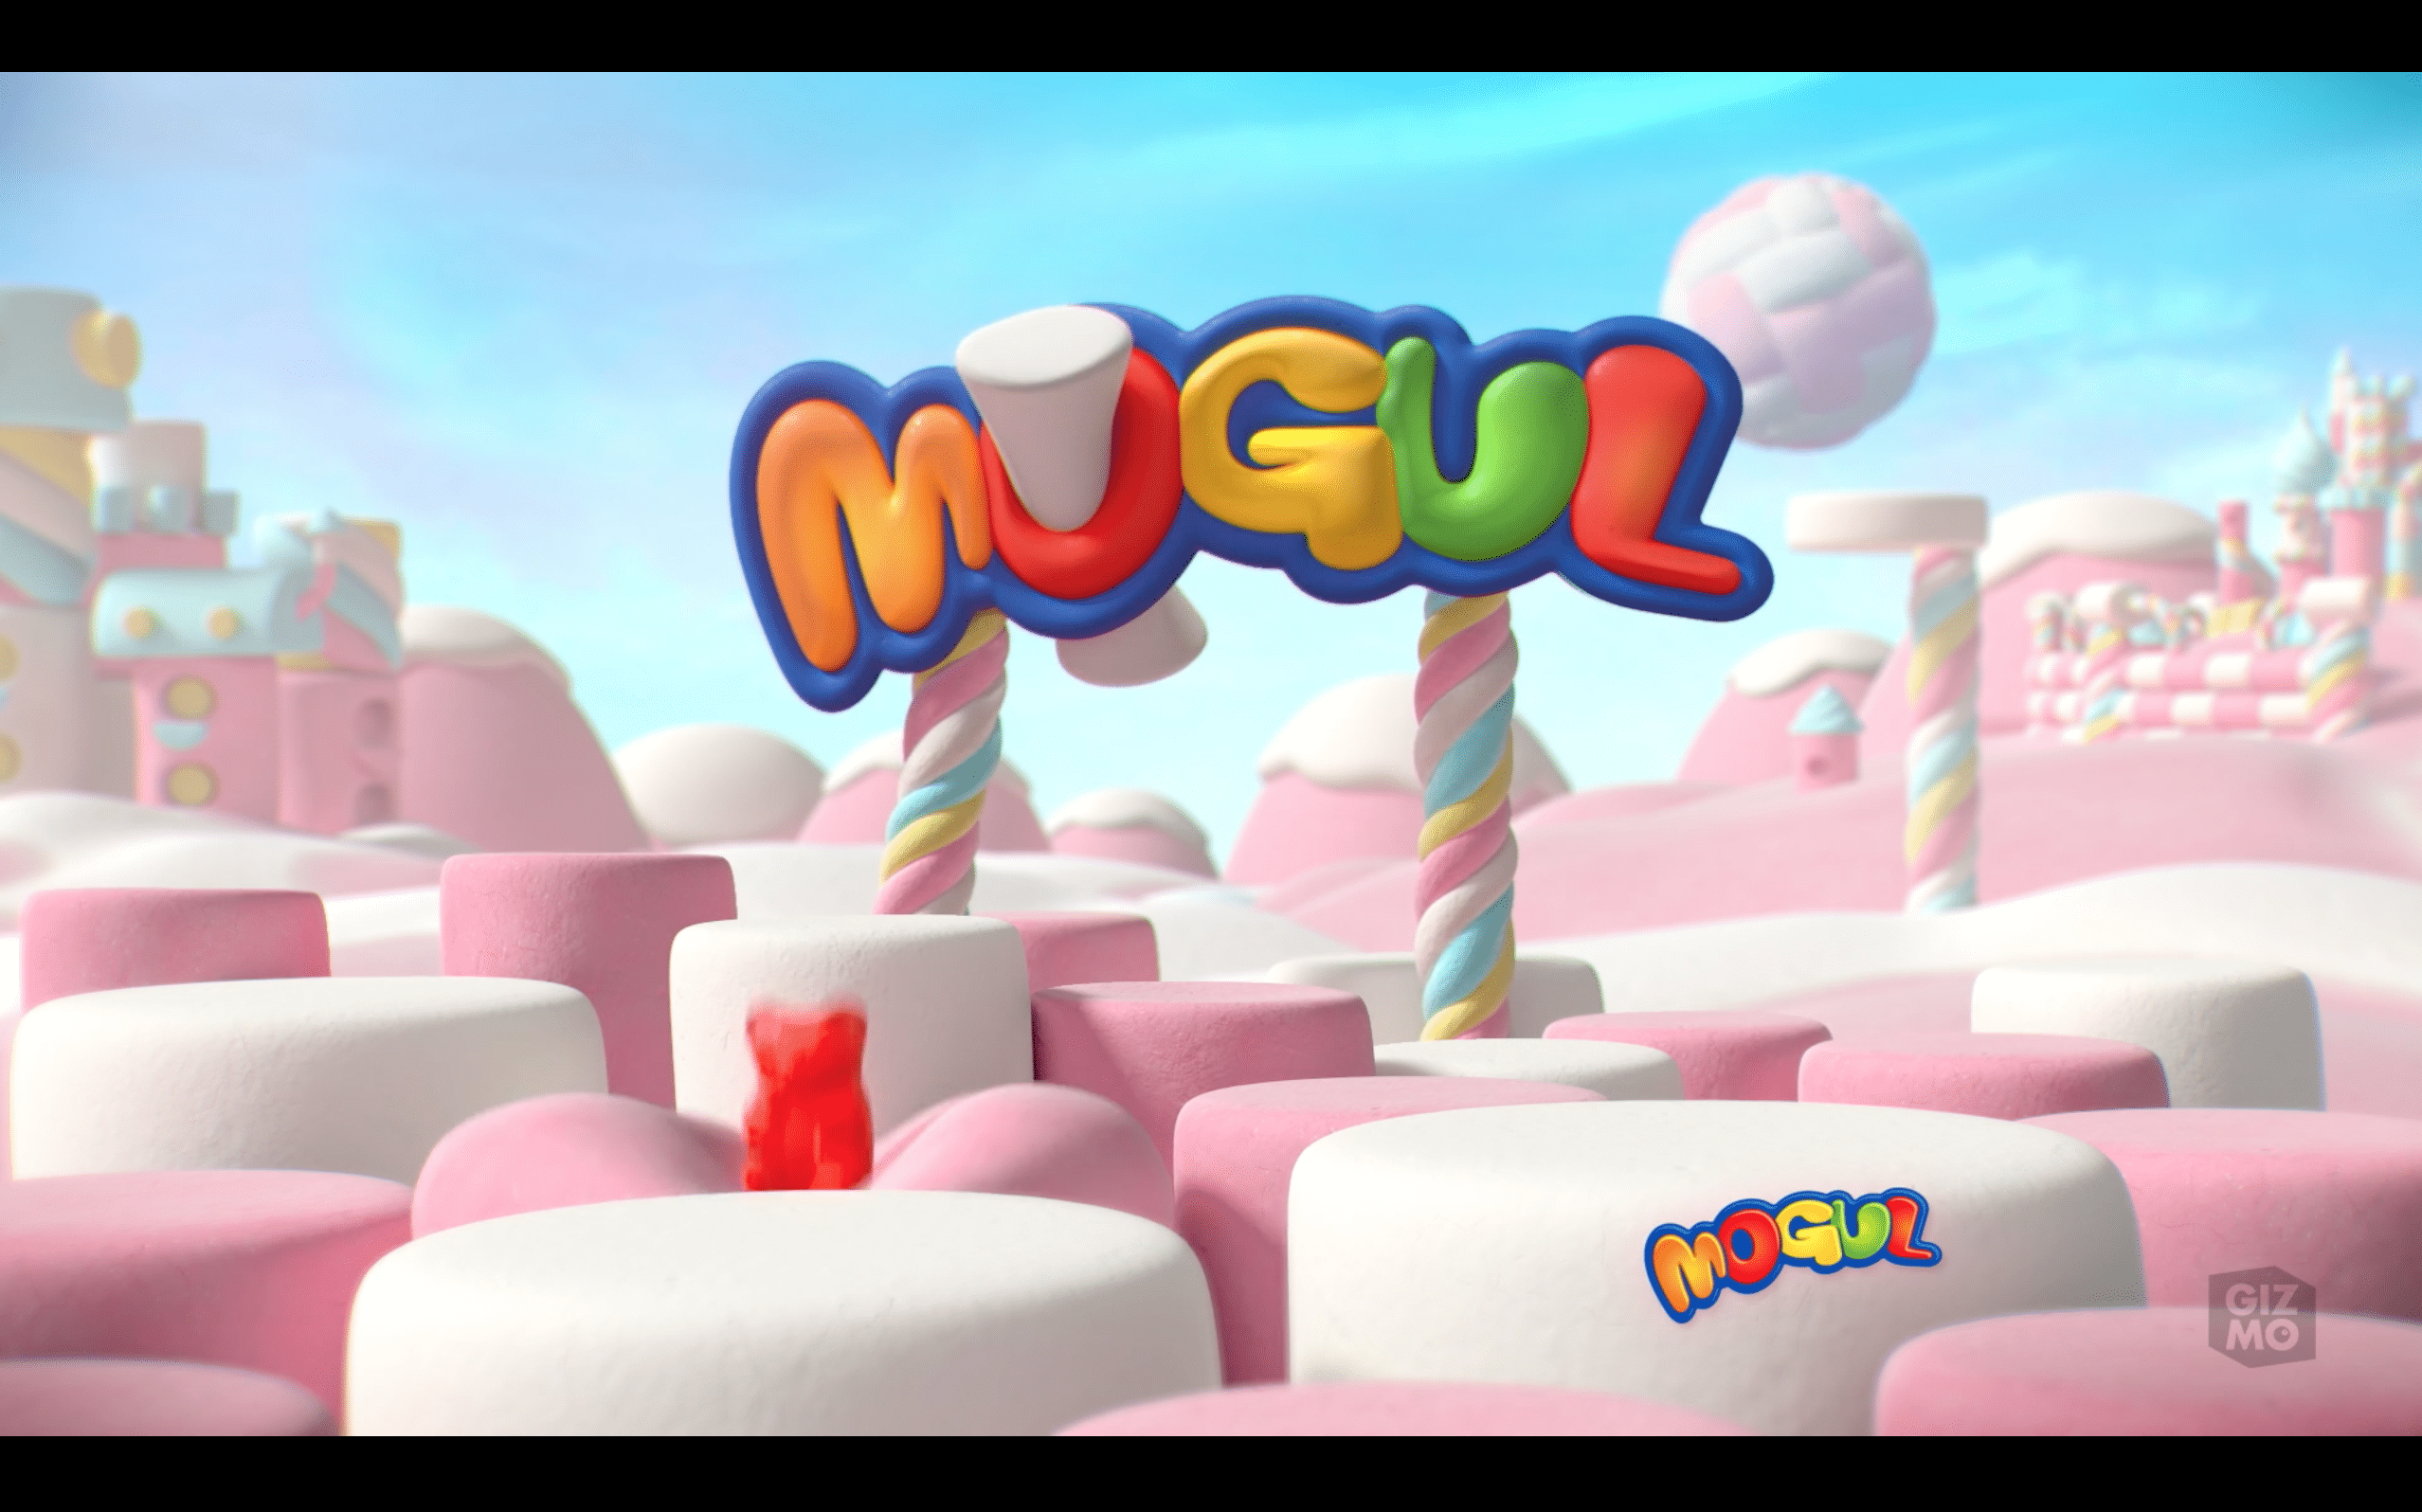 New Mogul Film